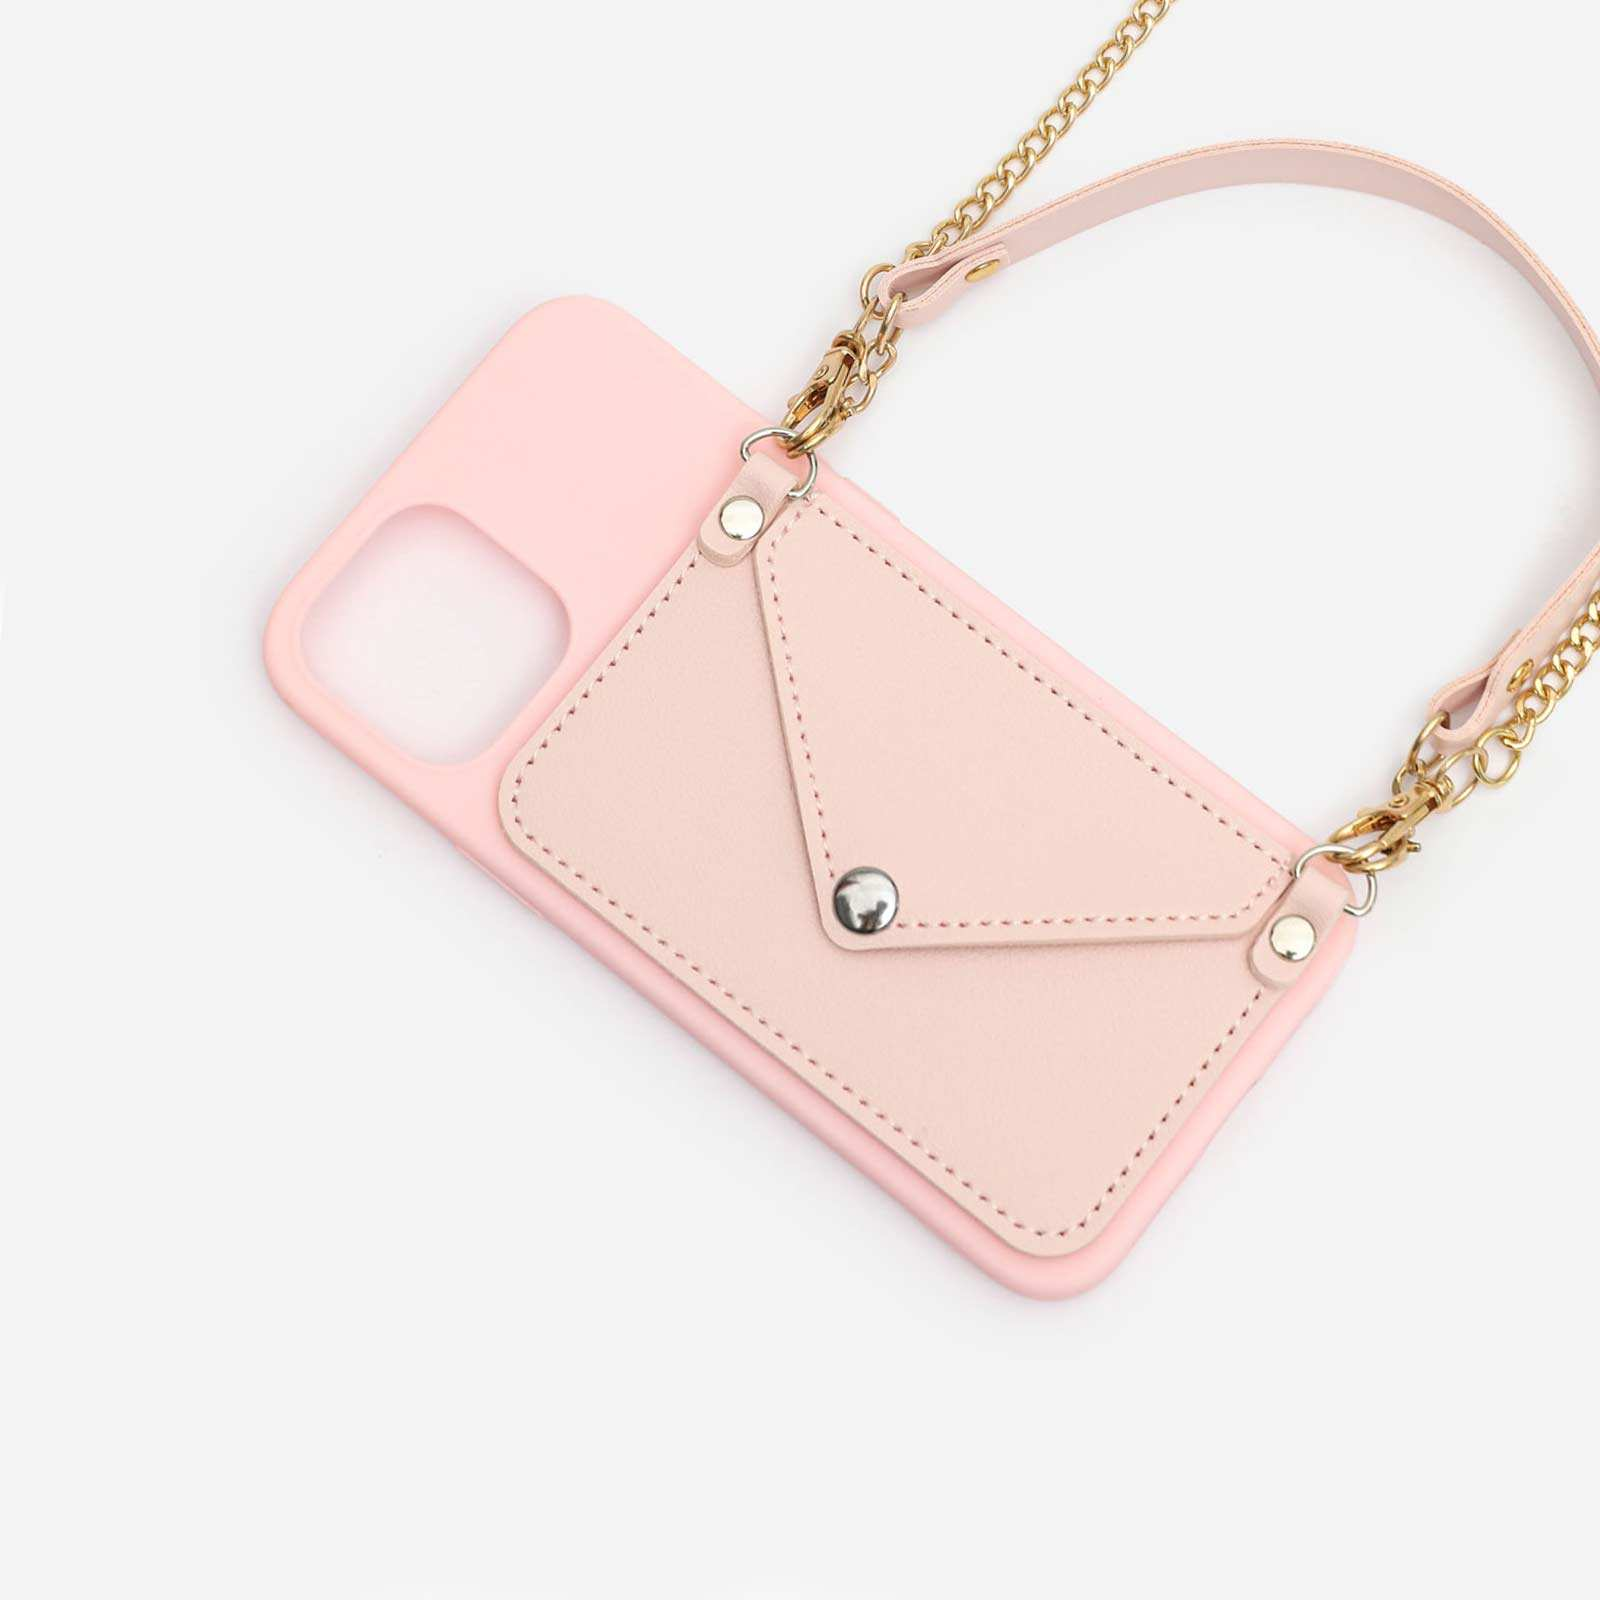 Pocket Detail With Handle Phonecase In Pink. iPhone 12 Pro Max